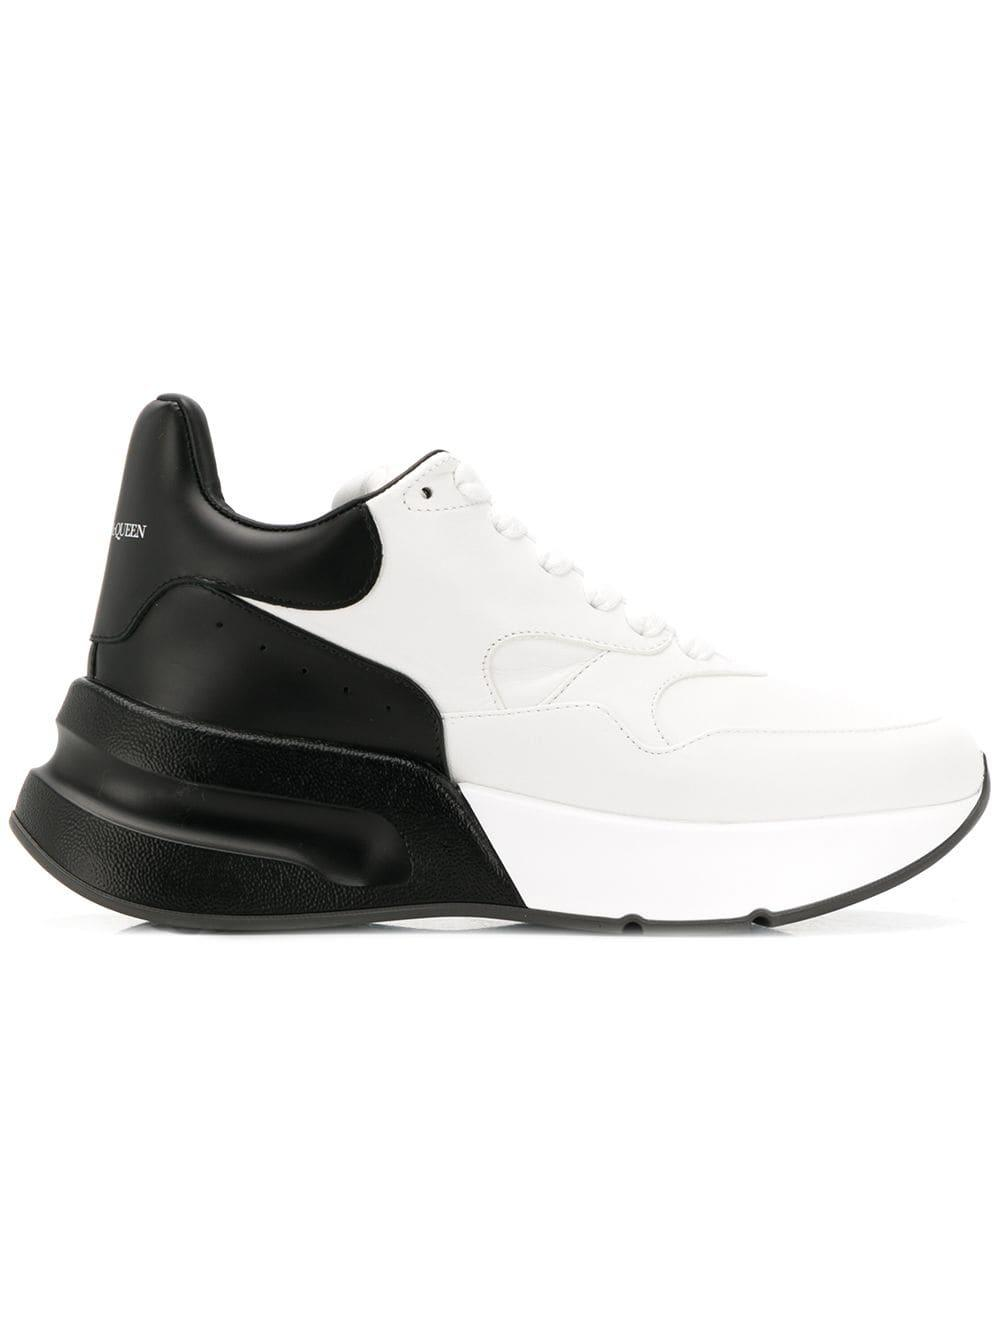 Alexander McQueen Leather Two-tone